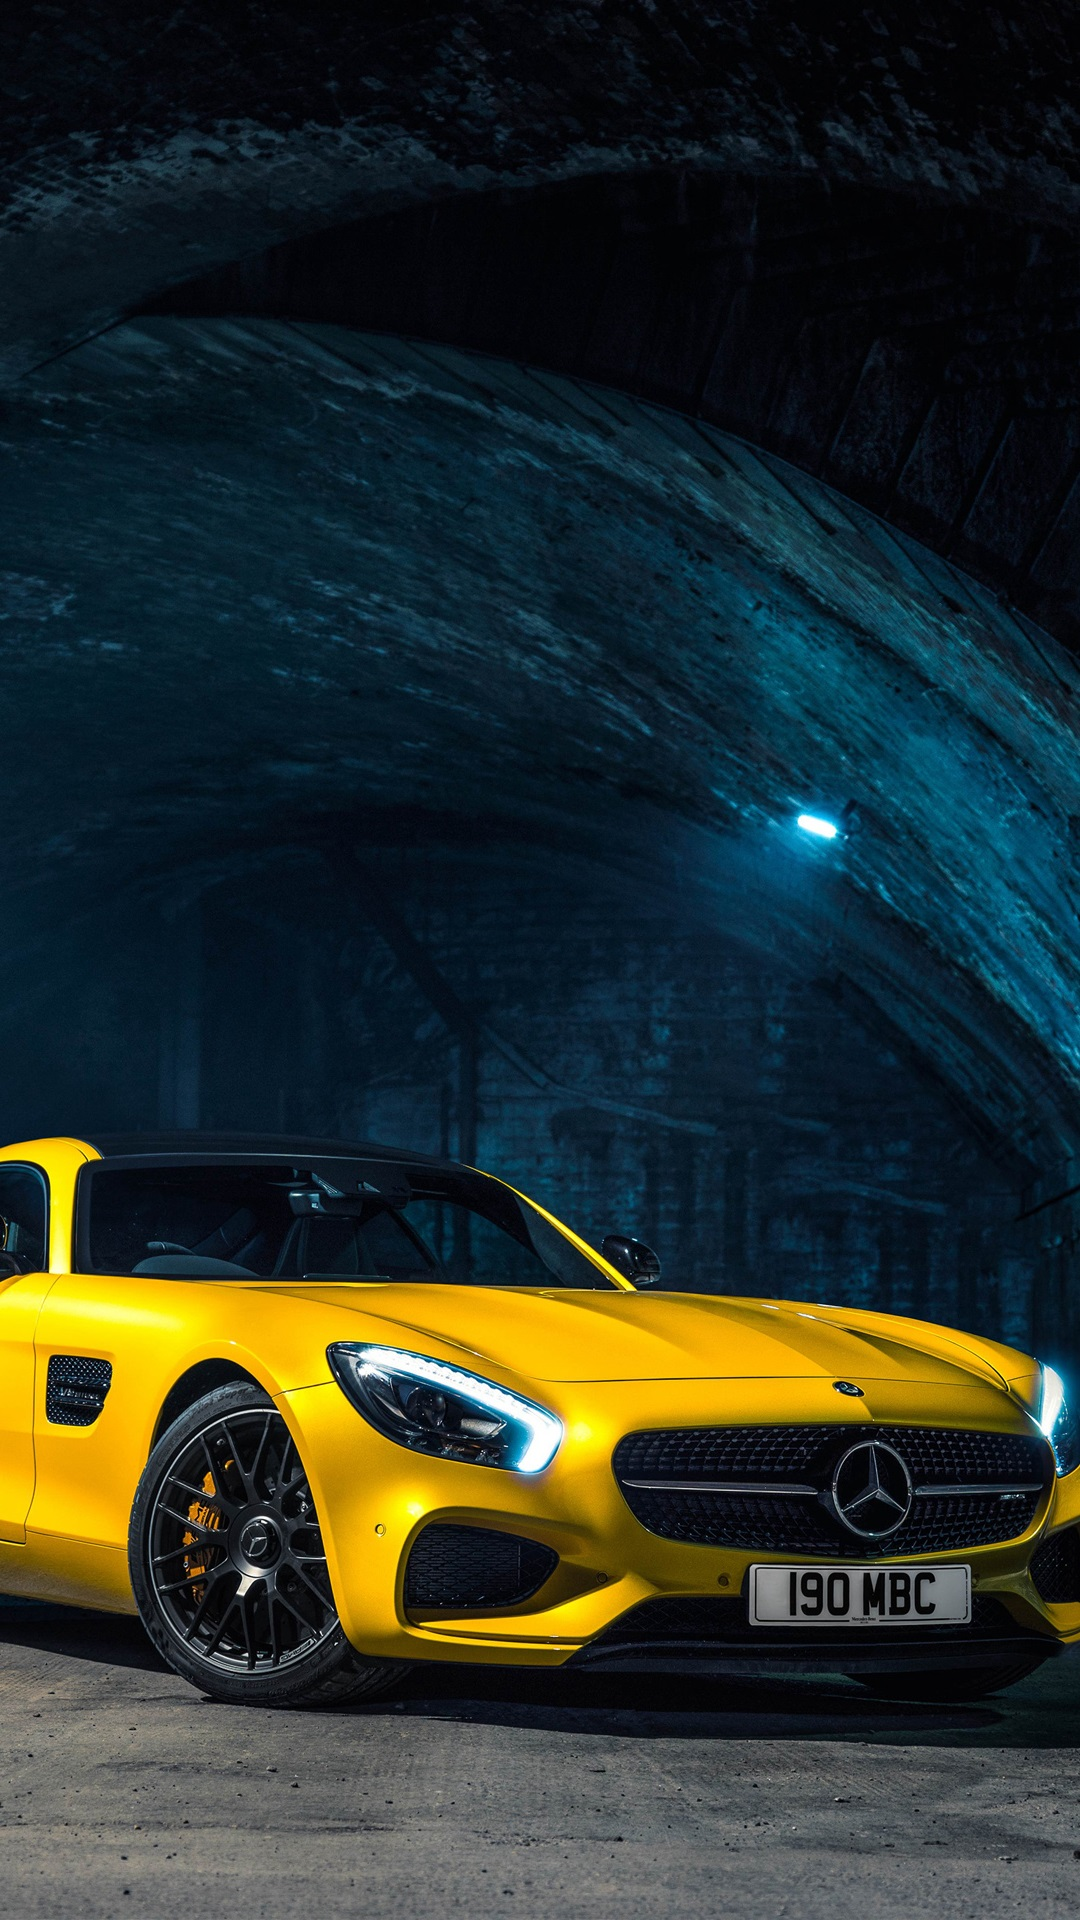 2015 Mercedes Benz Amg Gts Yellow Car Iphone Wallpaper